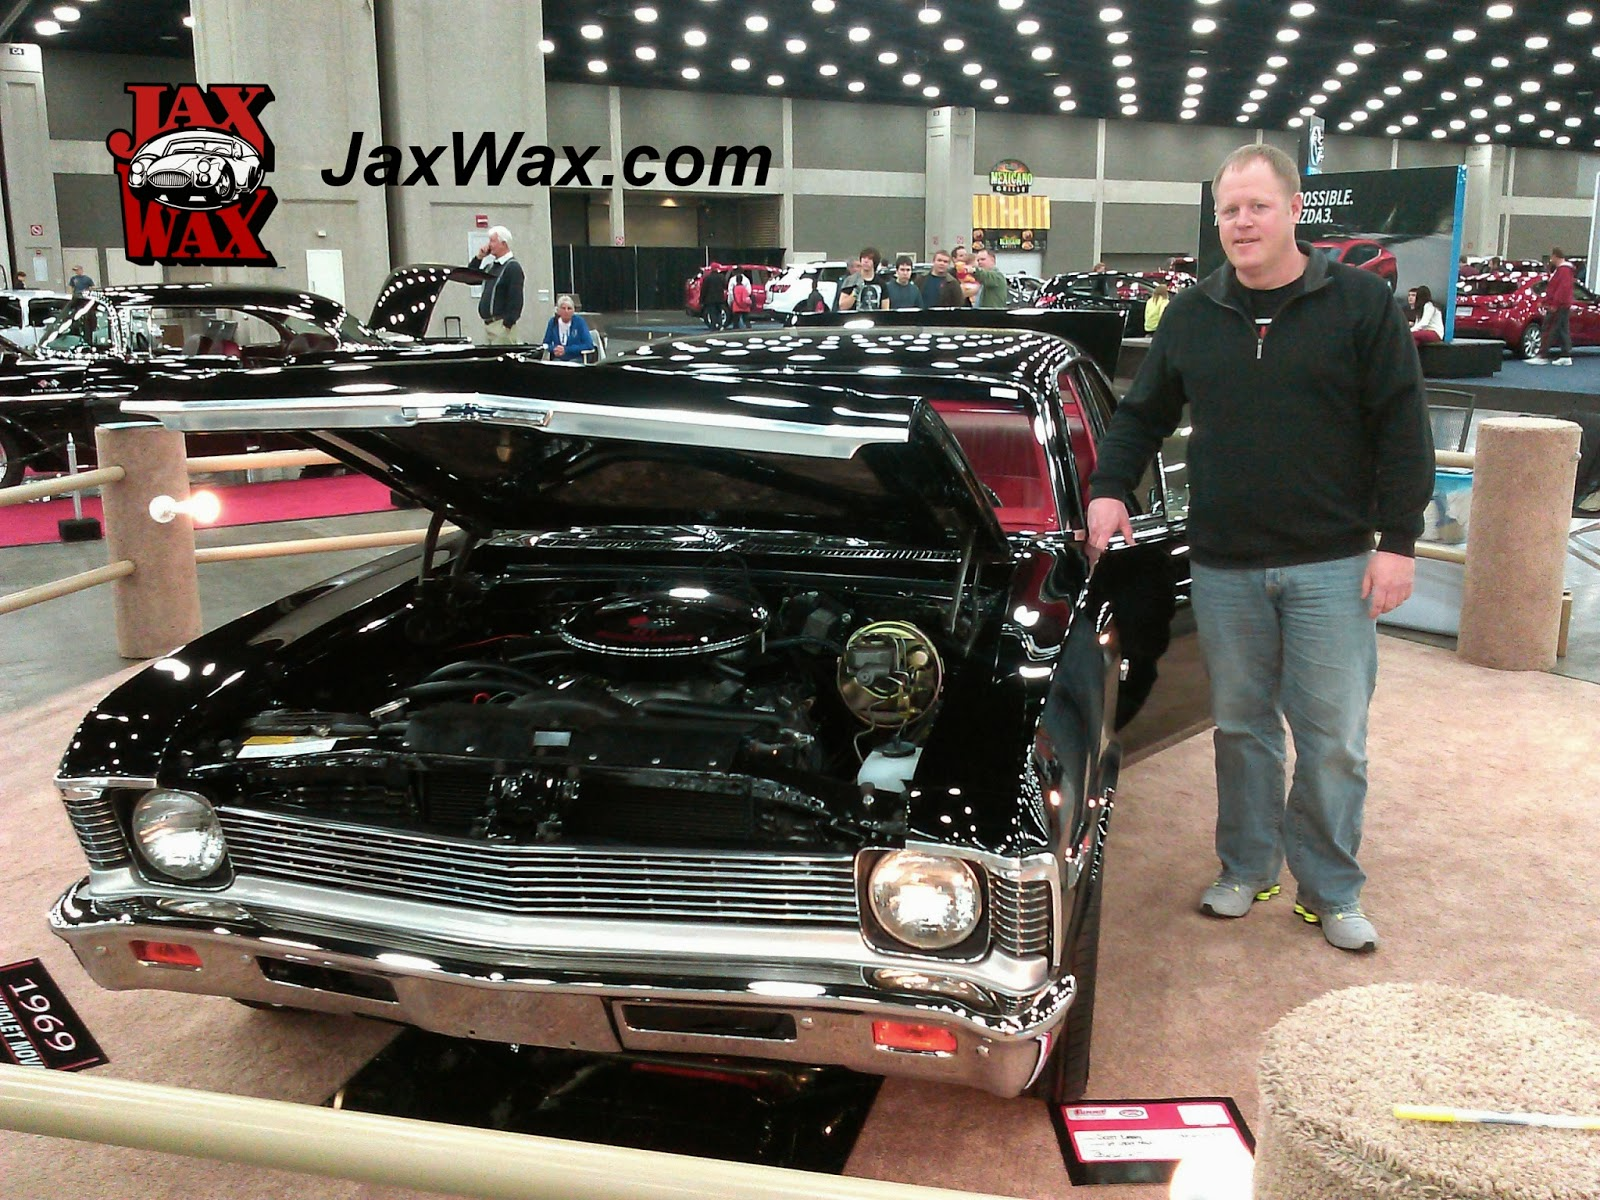 1969 Chevy Nova Carl Casper Auto Show Jax Wax Customer